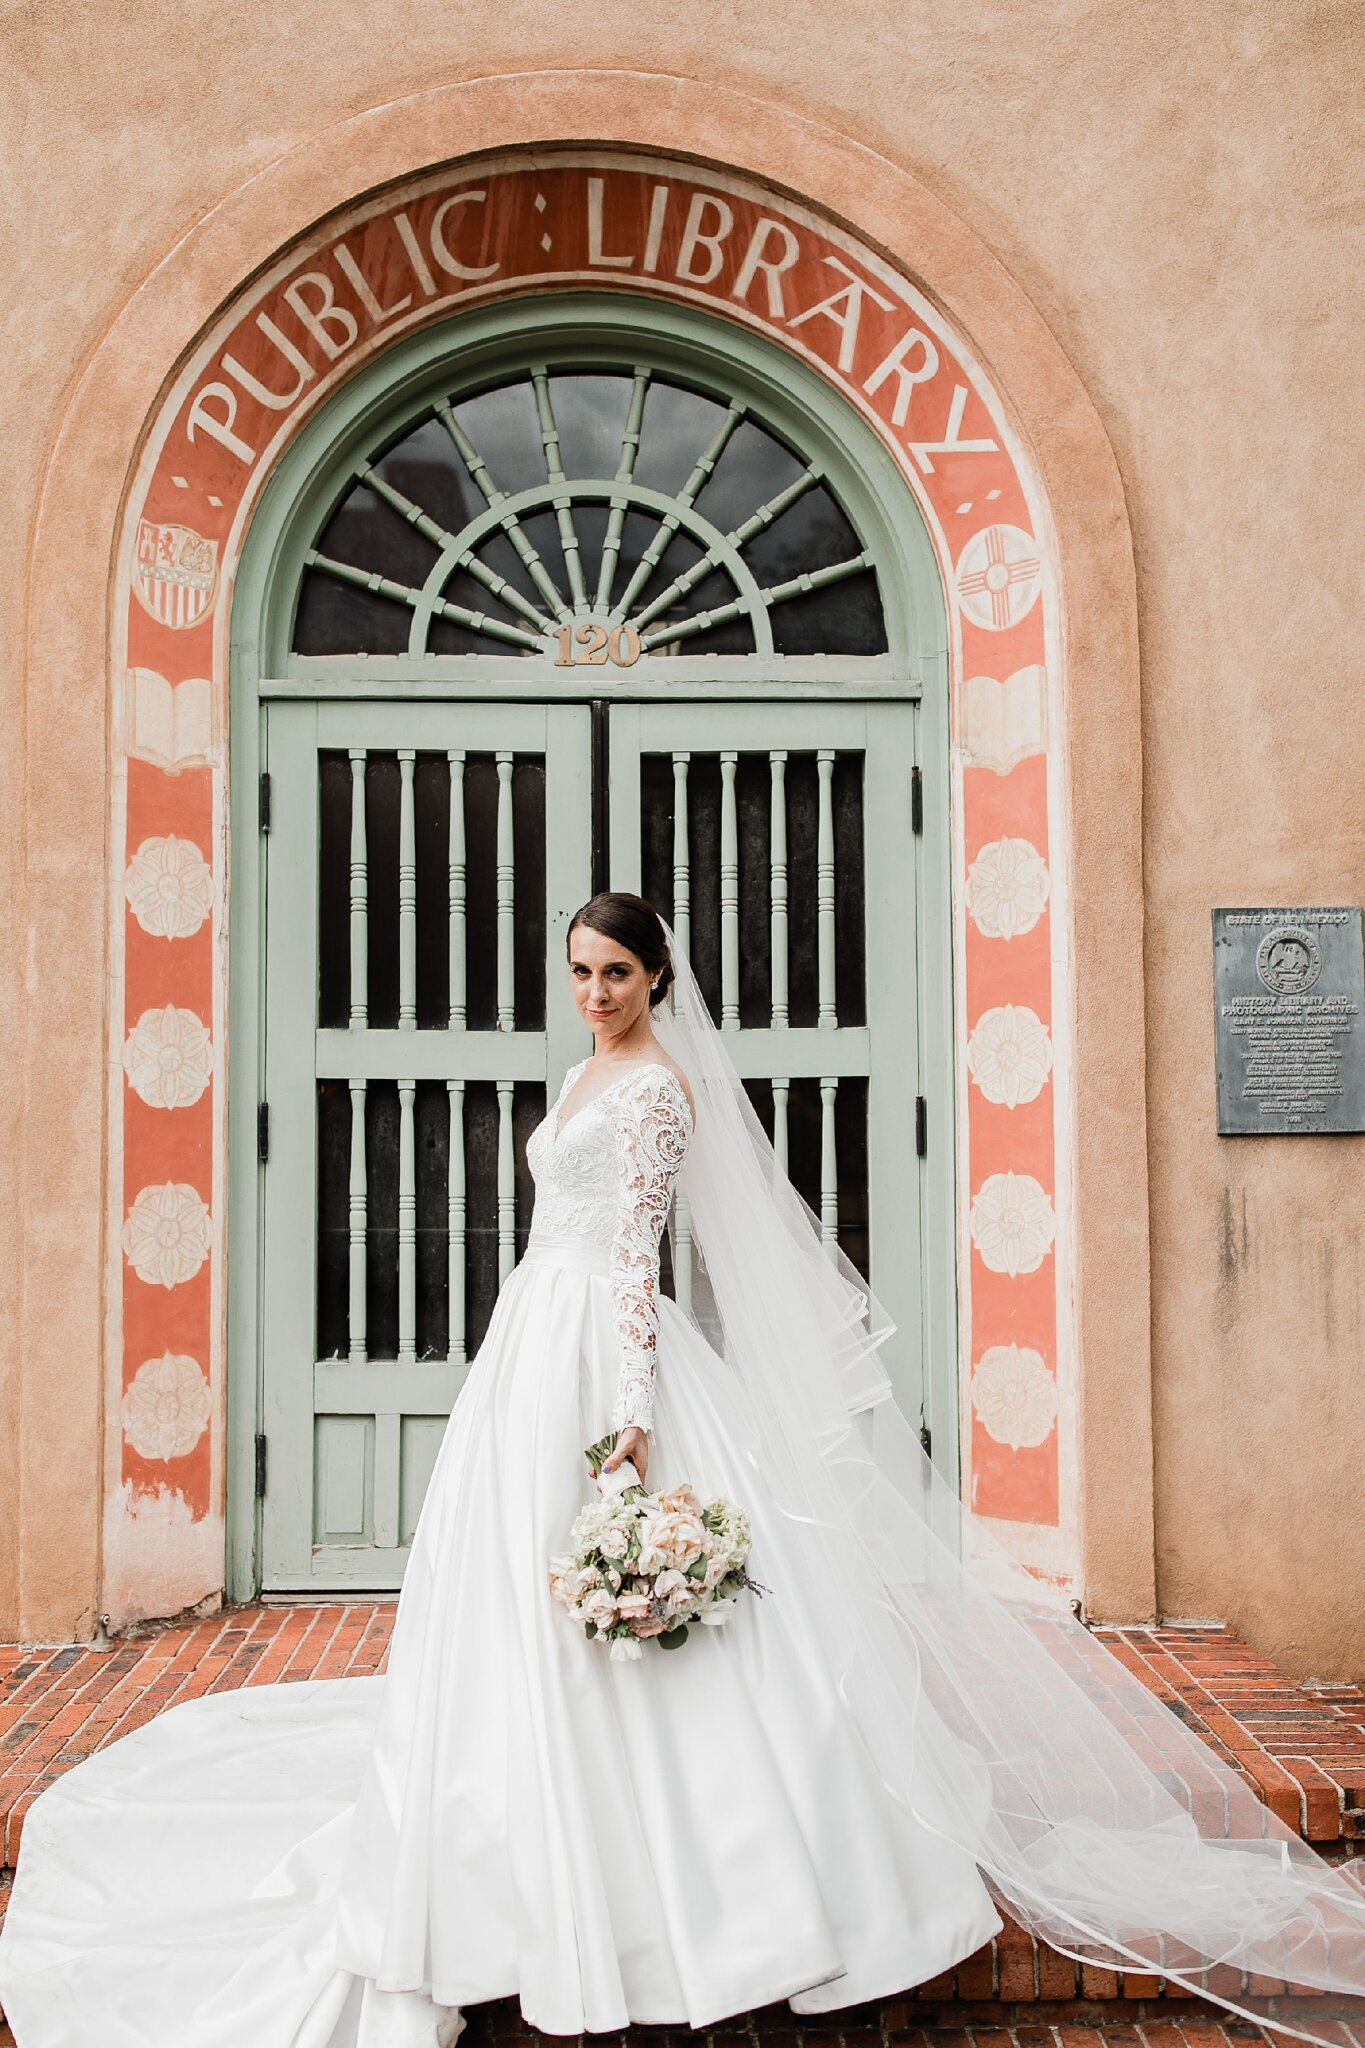 Alicia+lucia+photography+-+albuquerque+wedding+photographer+-+santa+fe+wedding+photography+-+new+mexico+wedding+photographer+-+new+mexico+wedding+-+wedding+-+bridal+gown+-+wedding+gown+-+ballgown+wedding+gown+-+ballgown+bridal+gown_0008.jpg